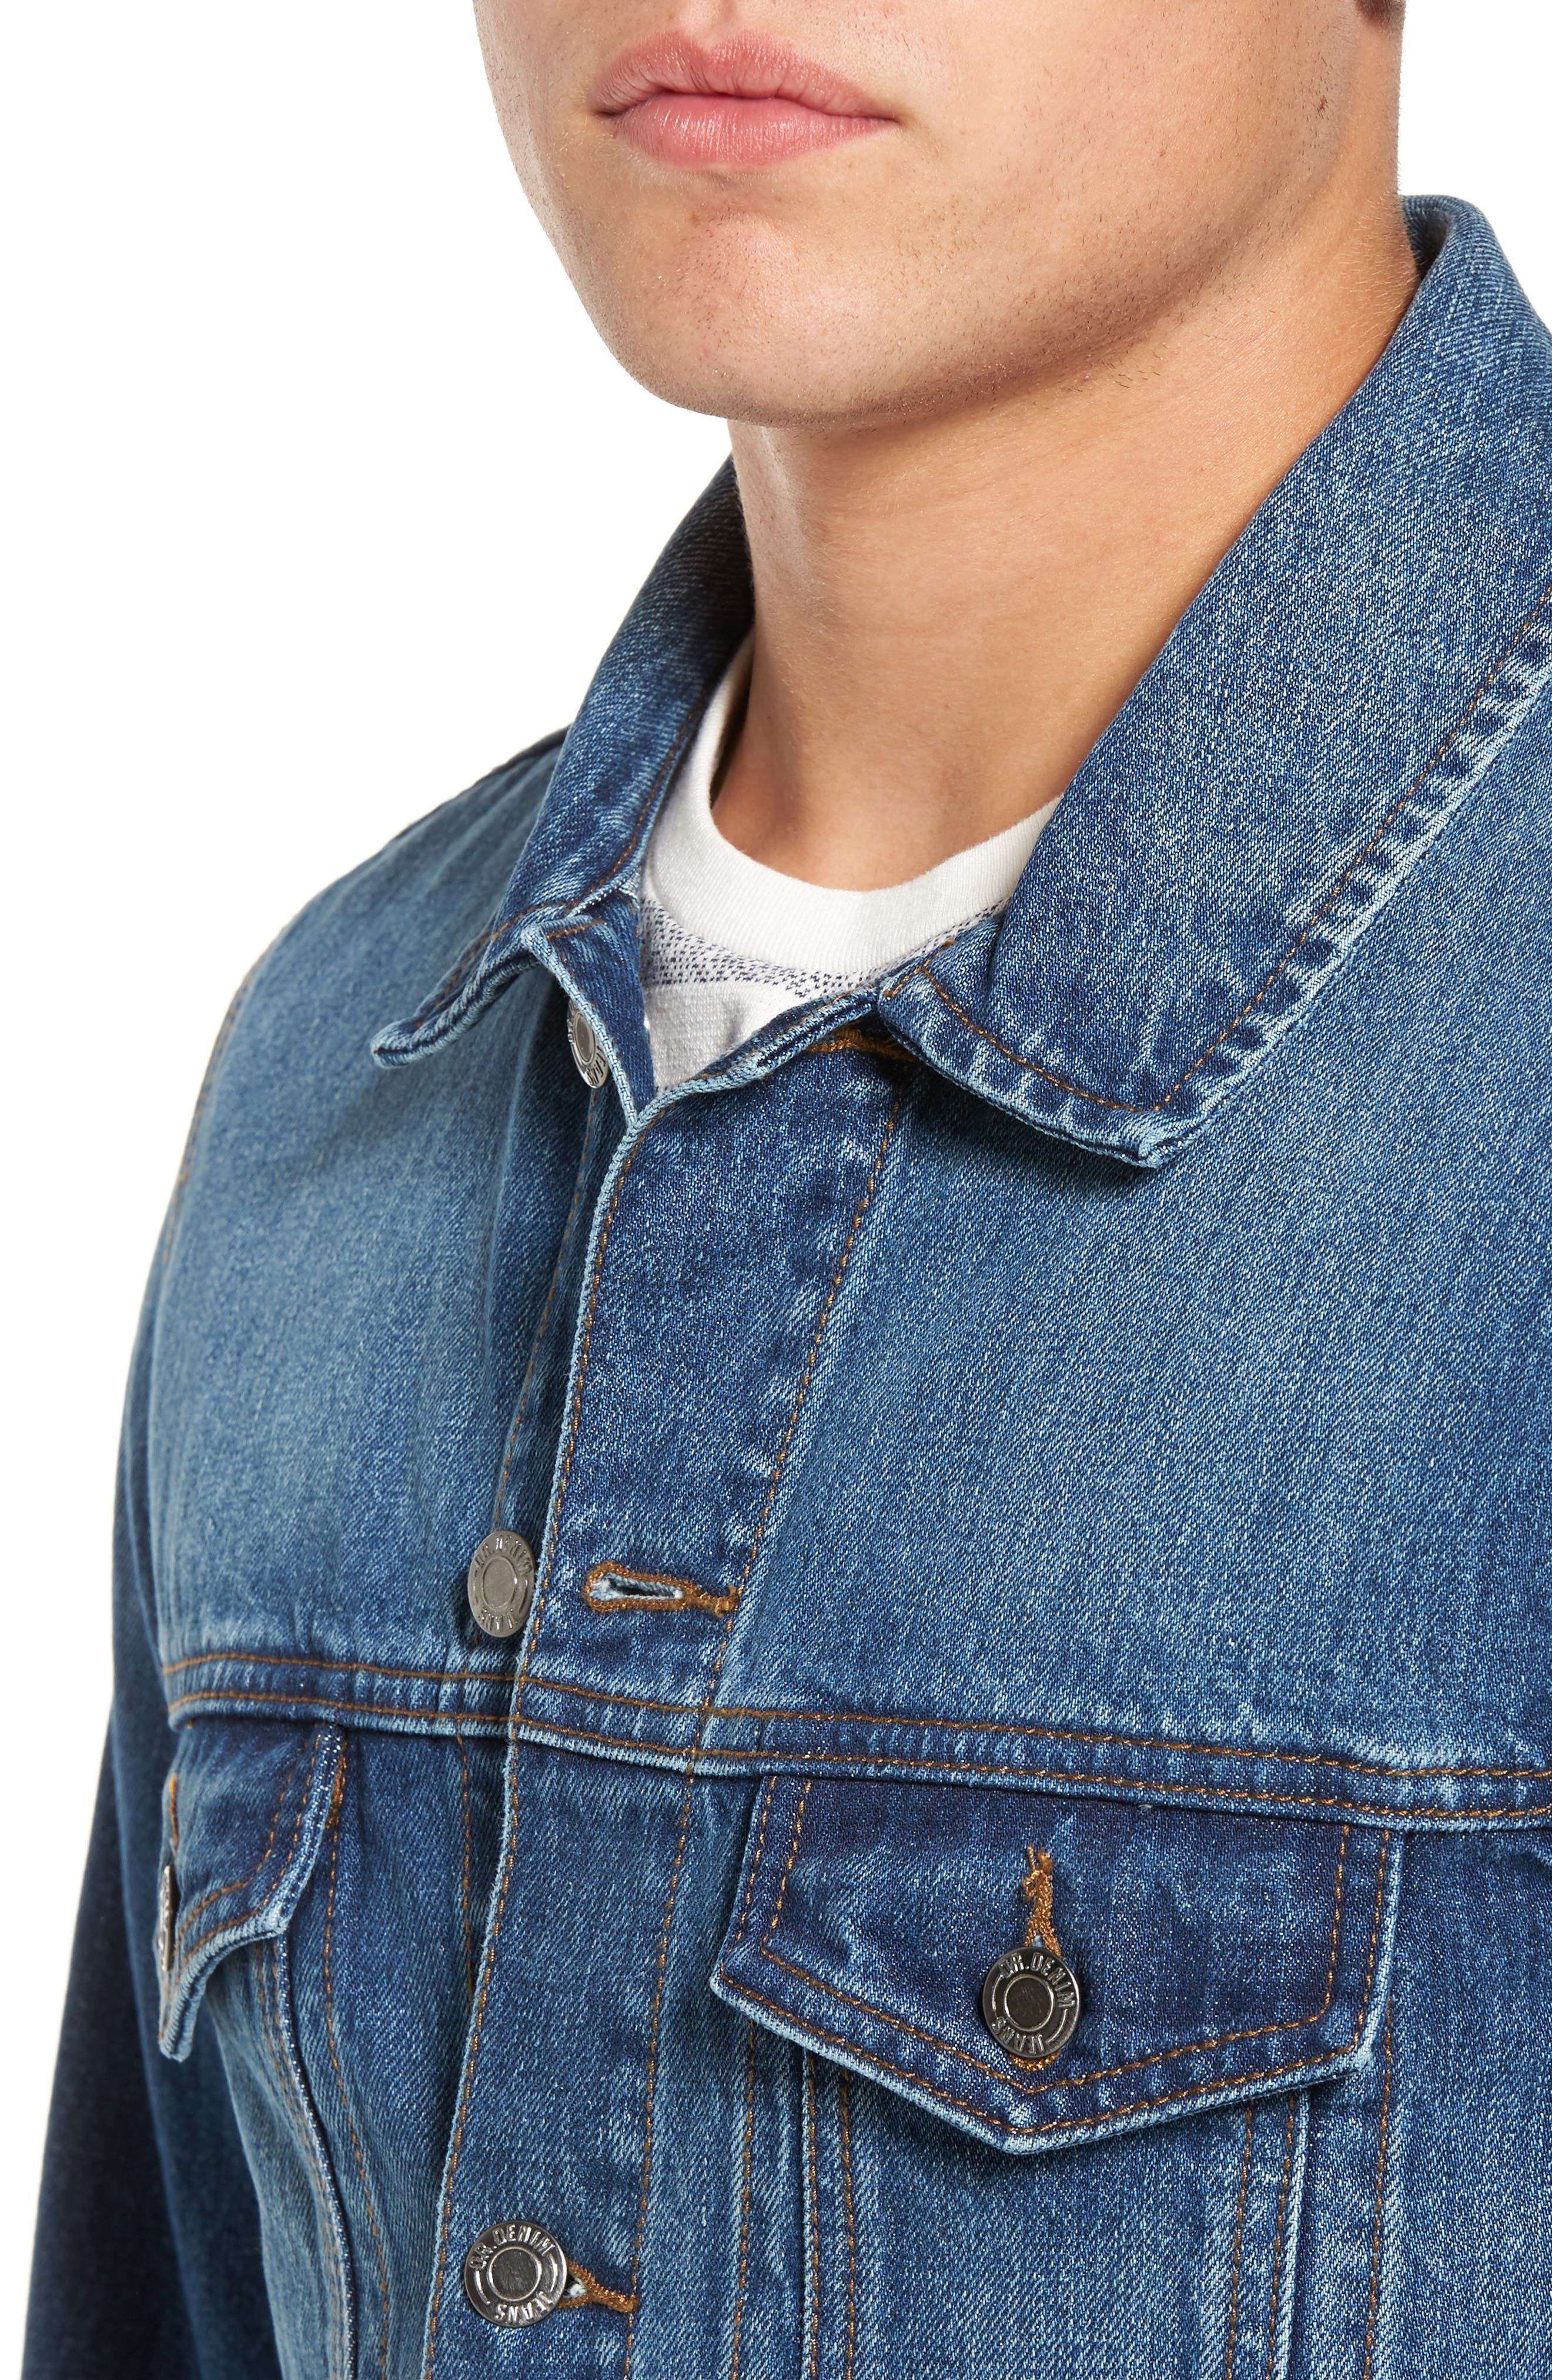 Dwight Denim Jacket,                             Alternate thumbnail 4, color,                             Worn Mid Blue